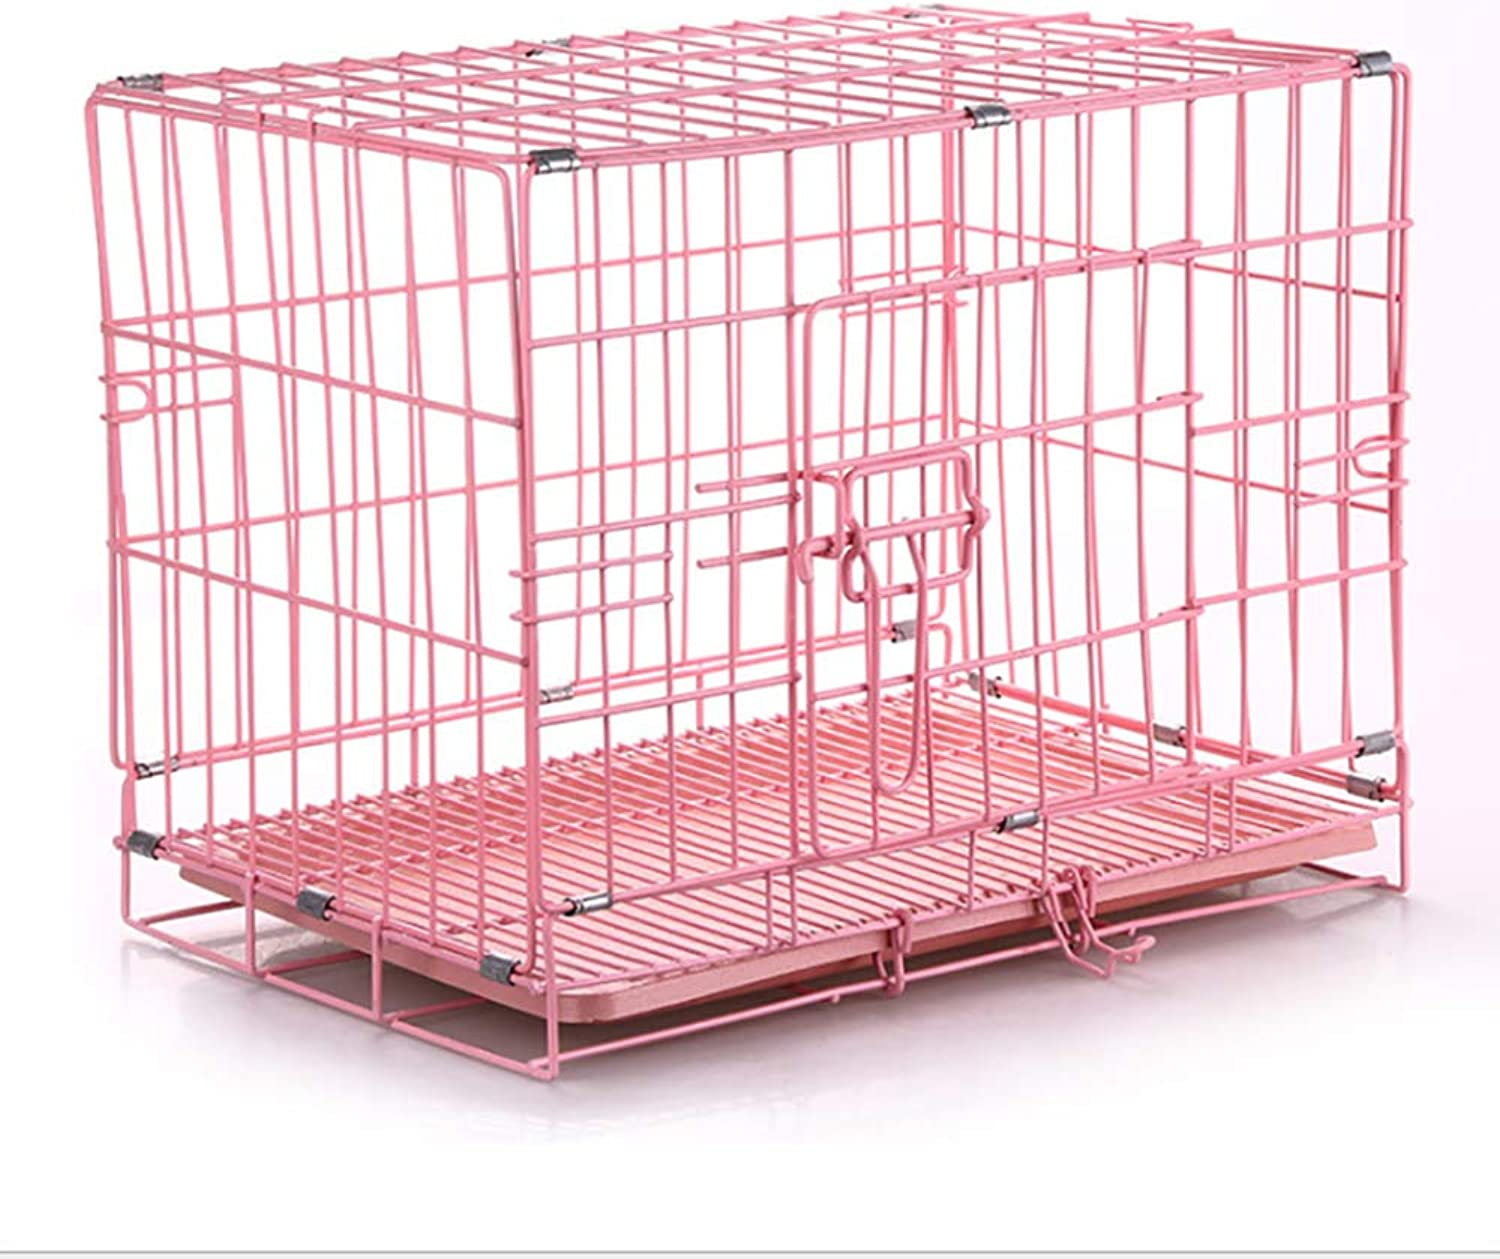 LIULINCUN Folding Metal Dog Wooden Box Easy Install Pink bluee S size for Small pet 46  30  38CM,Pink,46  30  38CM